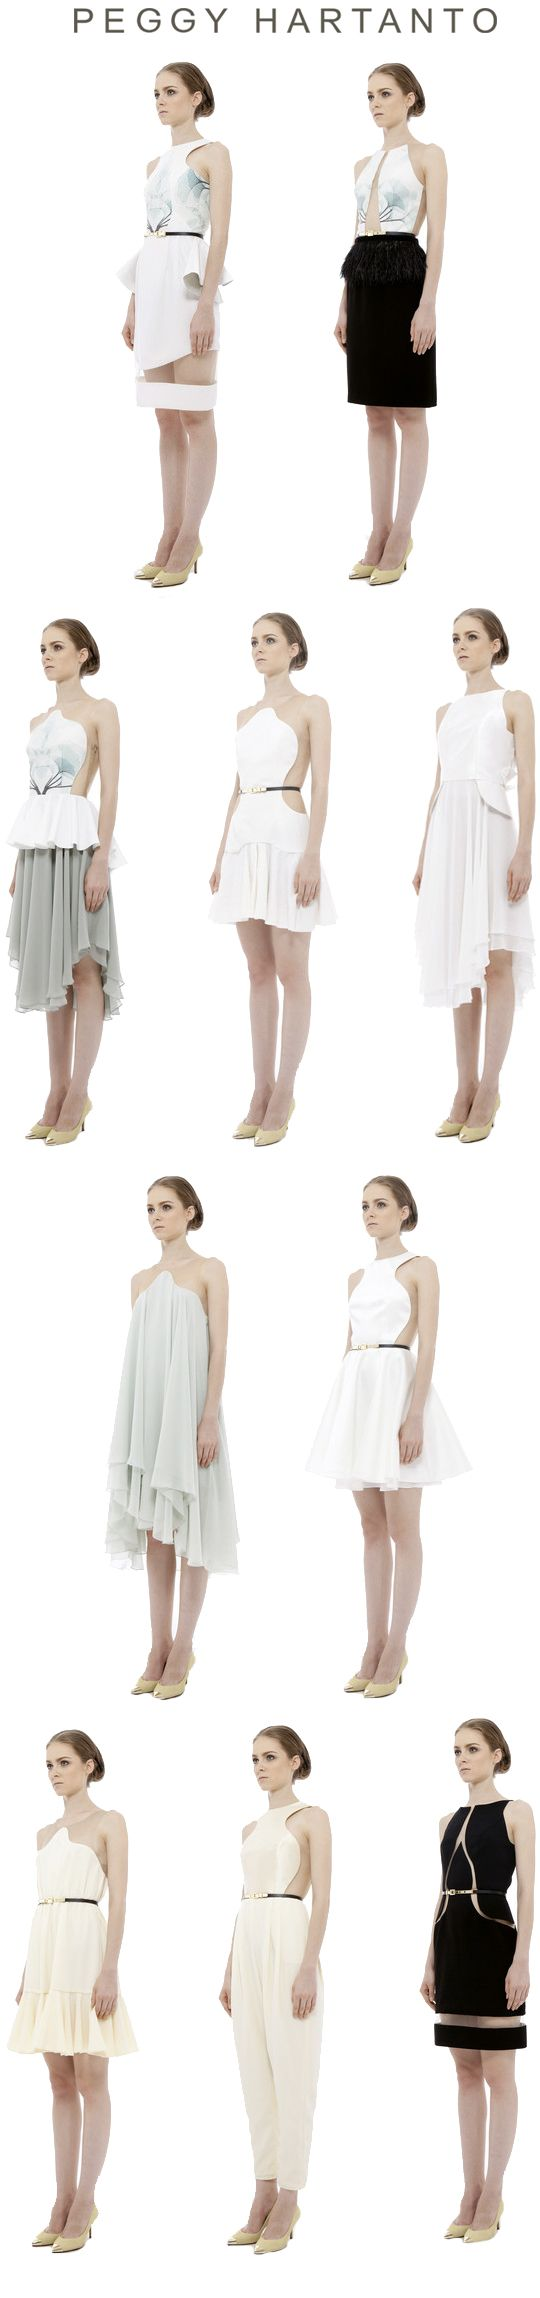 Peggy Hartanto Spring Summer 2013 Unseen Collection